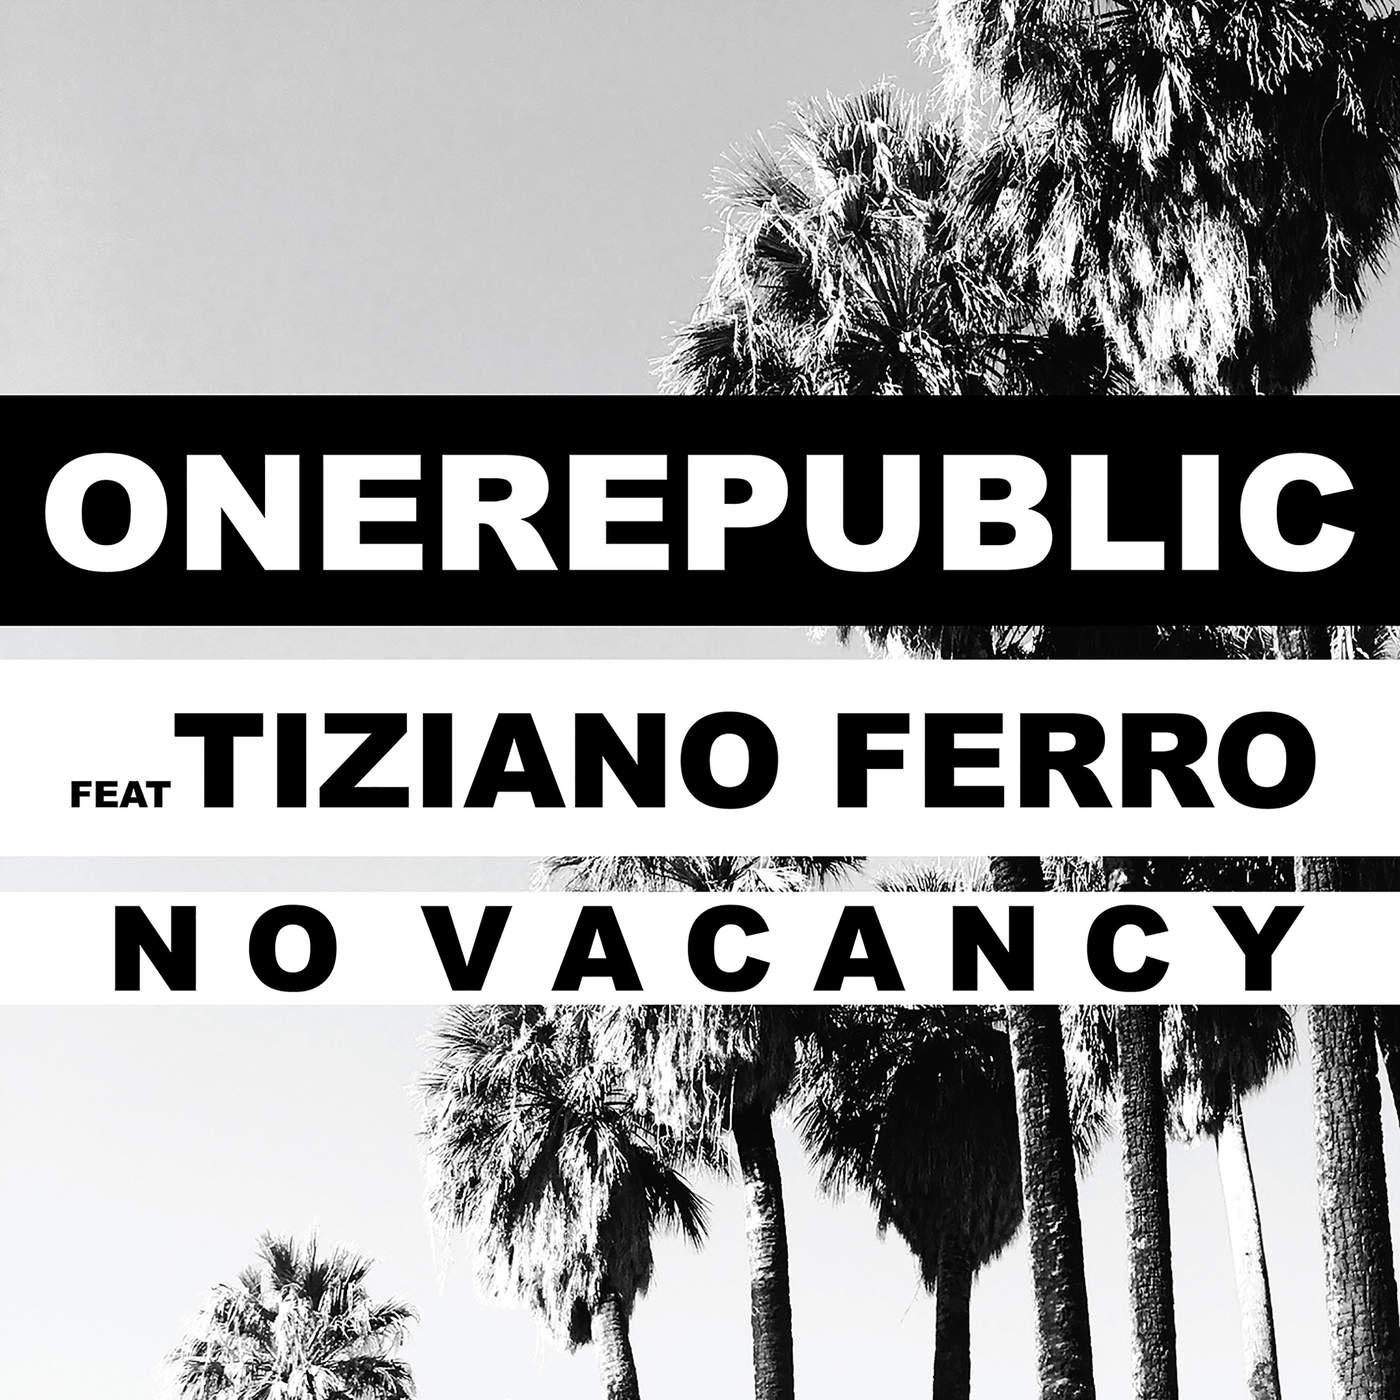 OneRepublic - No Vacancy (feat. Tiziano Ferro) - Single Cover